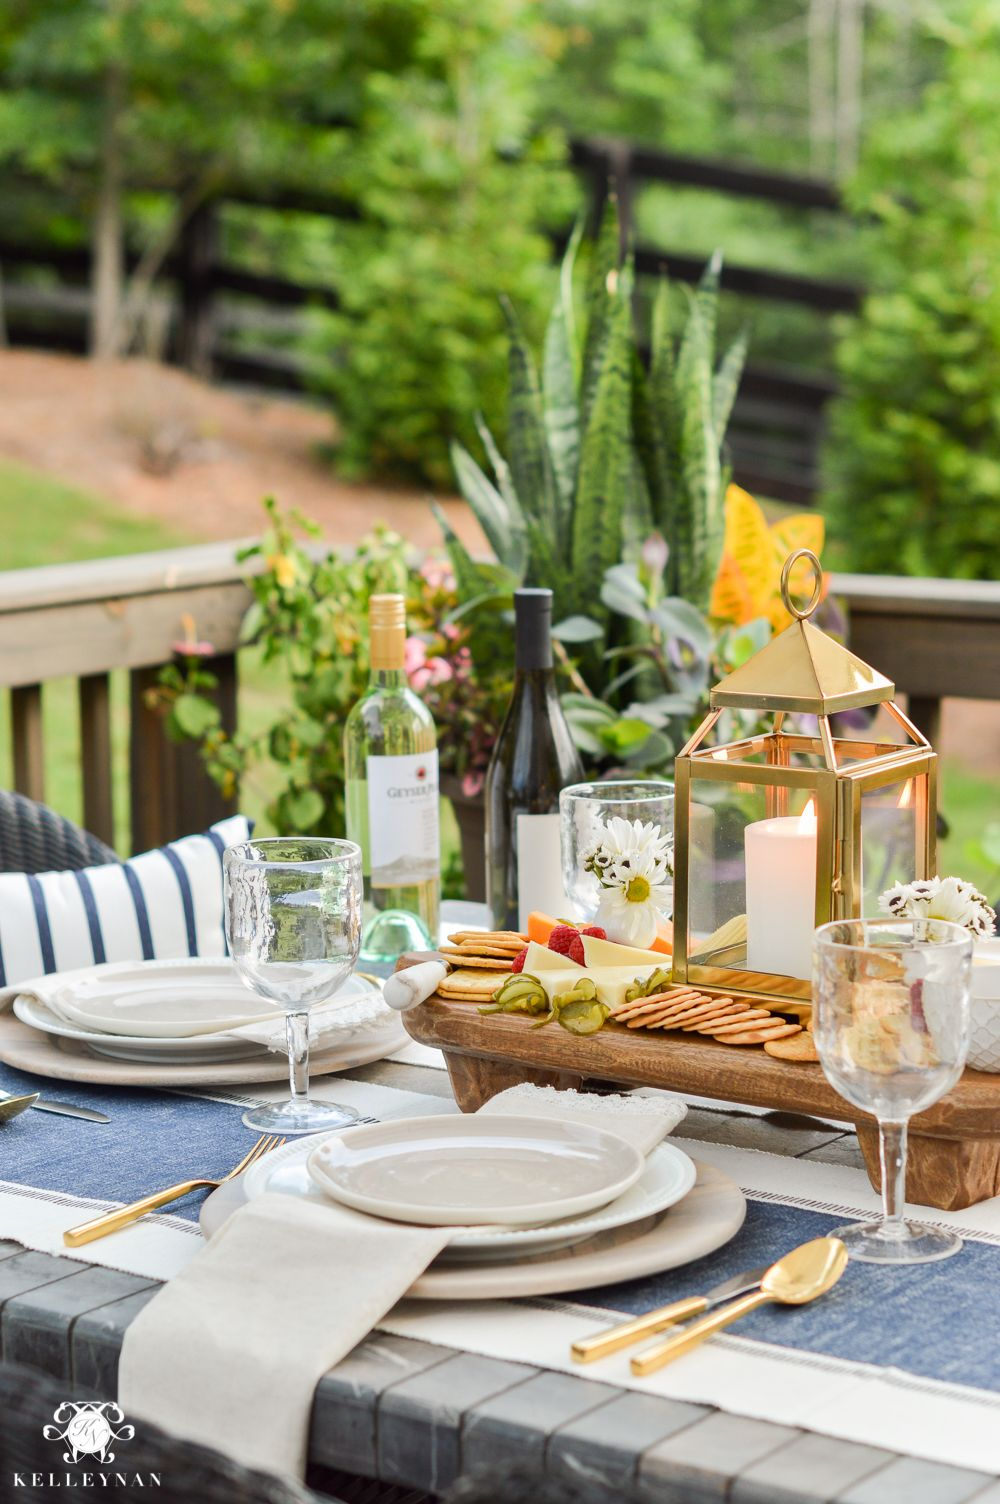 Appetizers And Cheese Boards A Different Centerpiece For Outdoor Dining Kelley Nan Outdoor Dinner Table Outdoor Dinner Dinner Table Setting